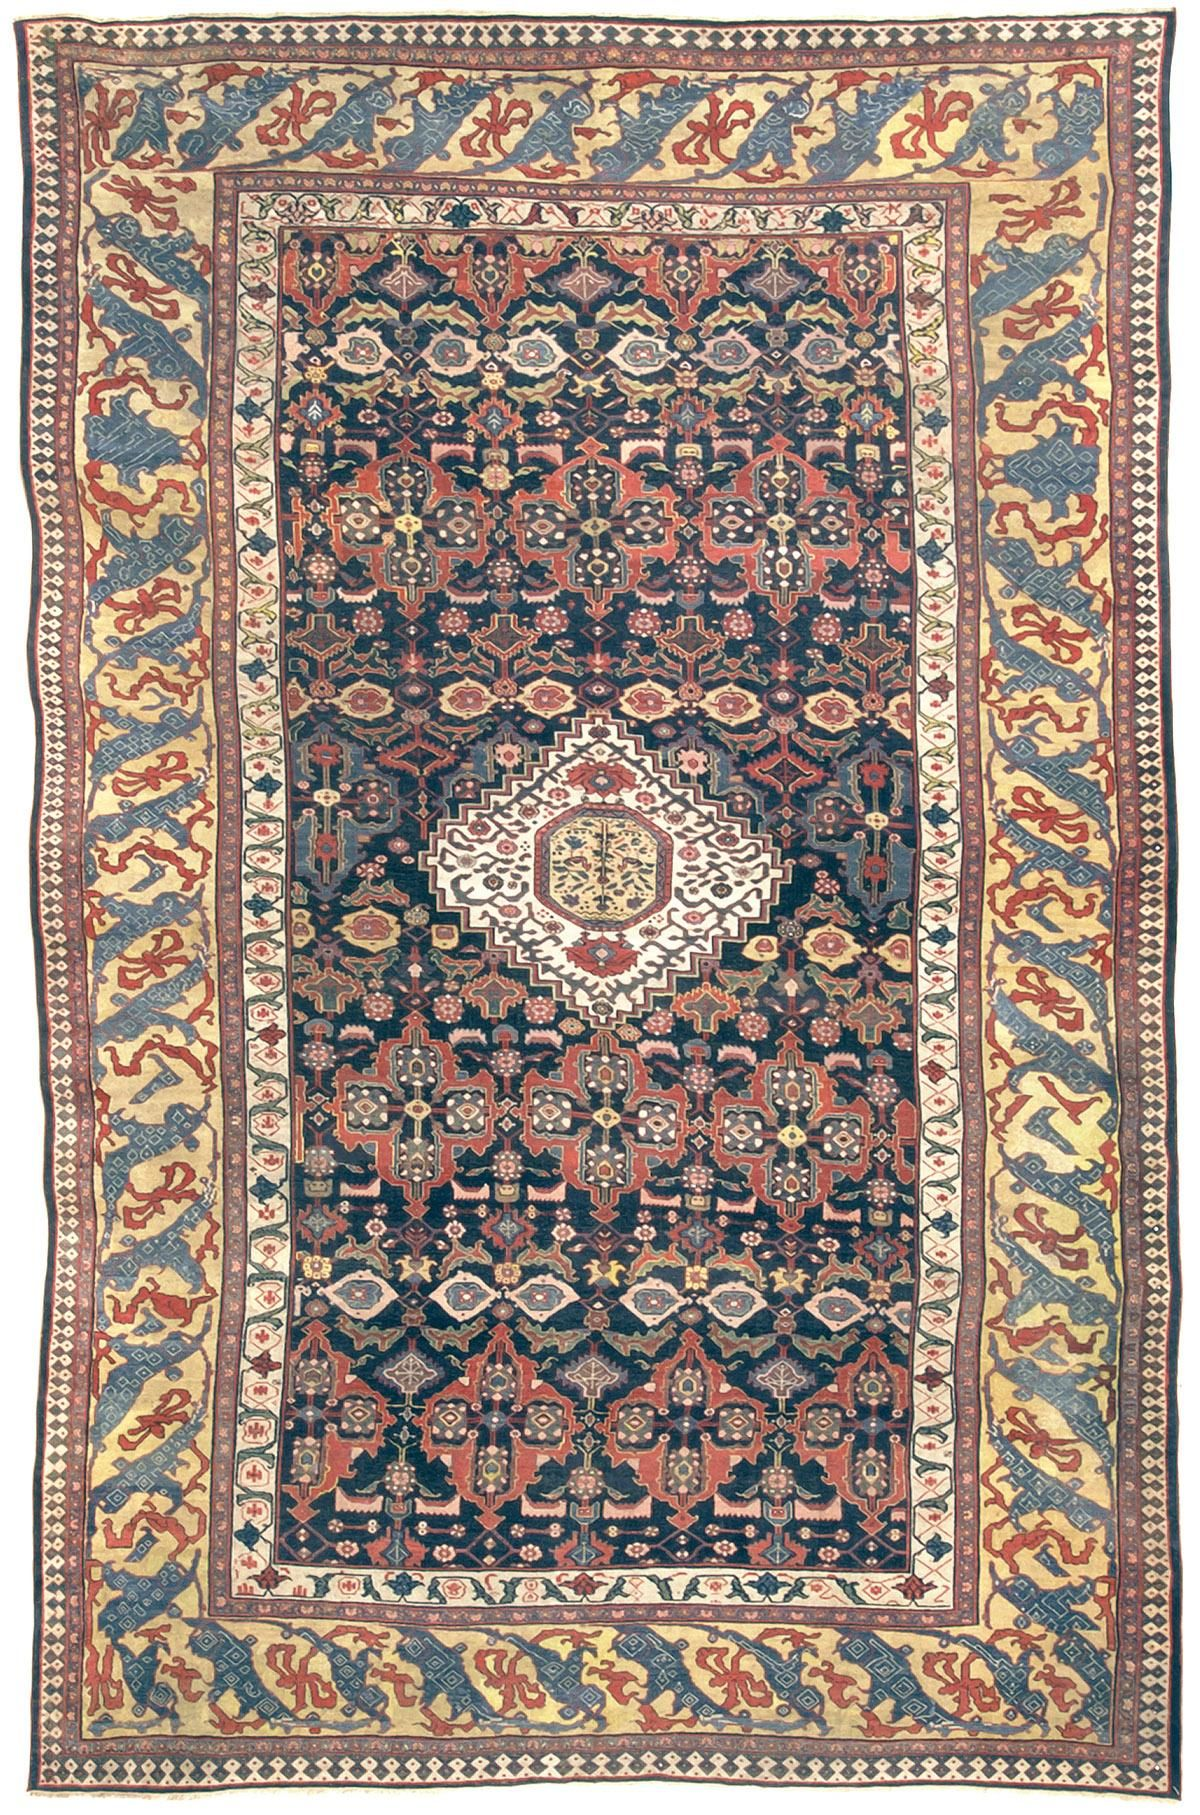 Sorry This Rug Is No Longer Available Claremont Rug Company Antique Persian Carpet Antique Persian Rug Antique Oriental Rugs